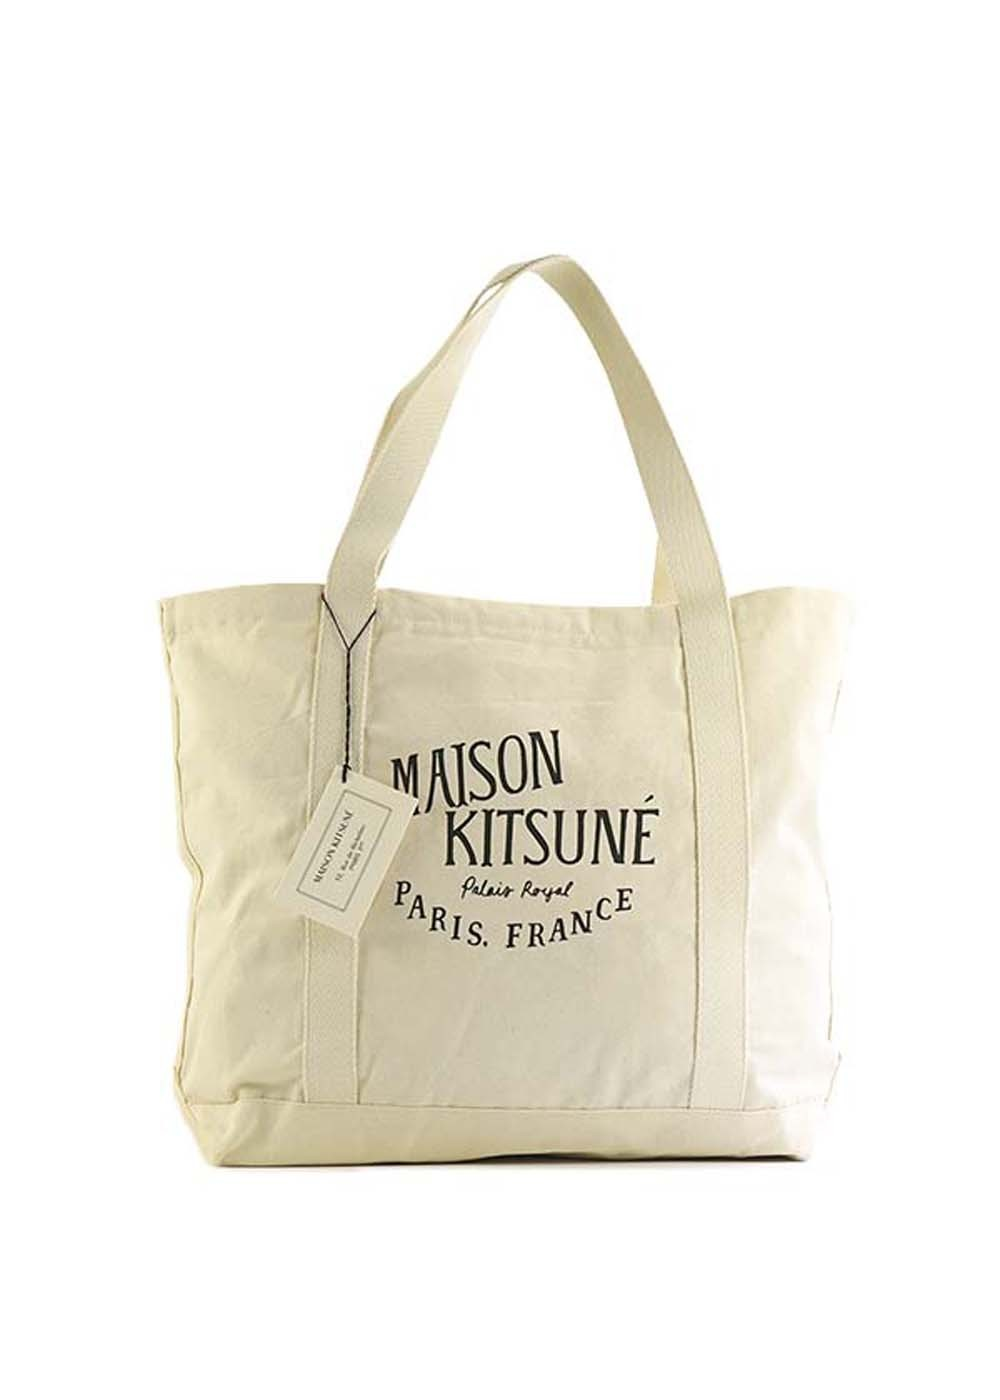 【最大35%OFF】【1番人気】SHOPPING BAG PALAIS ROYAL|ECRU BLACK|トートバッグ|MAISON KITSUNE(C)